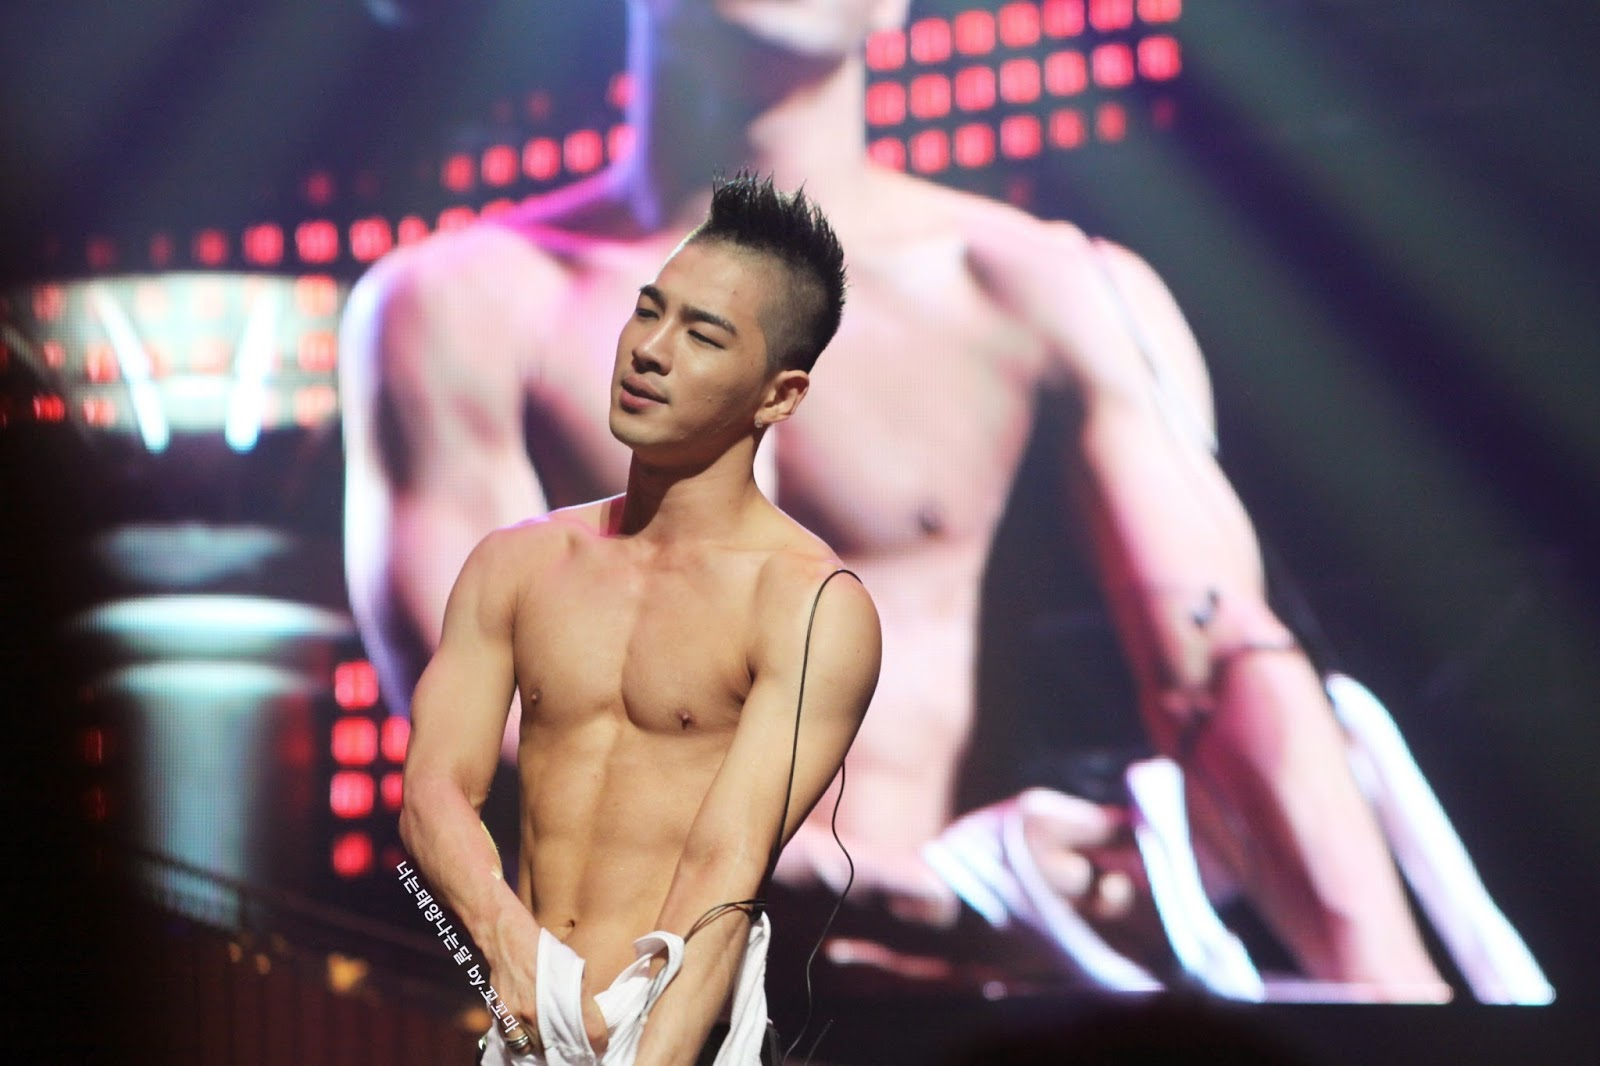 Malaysia welcomes Taeyang but with warnings